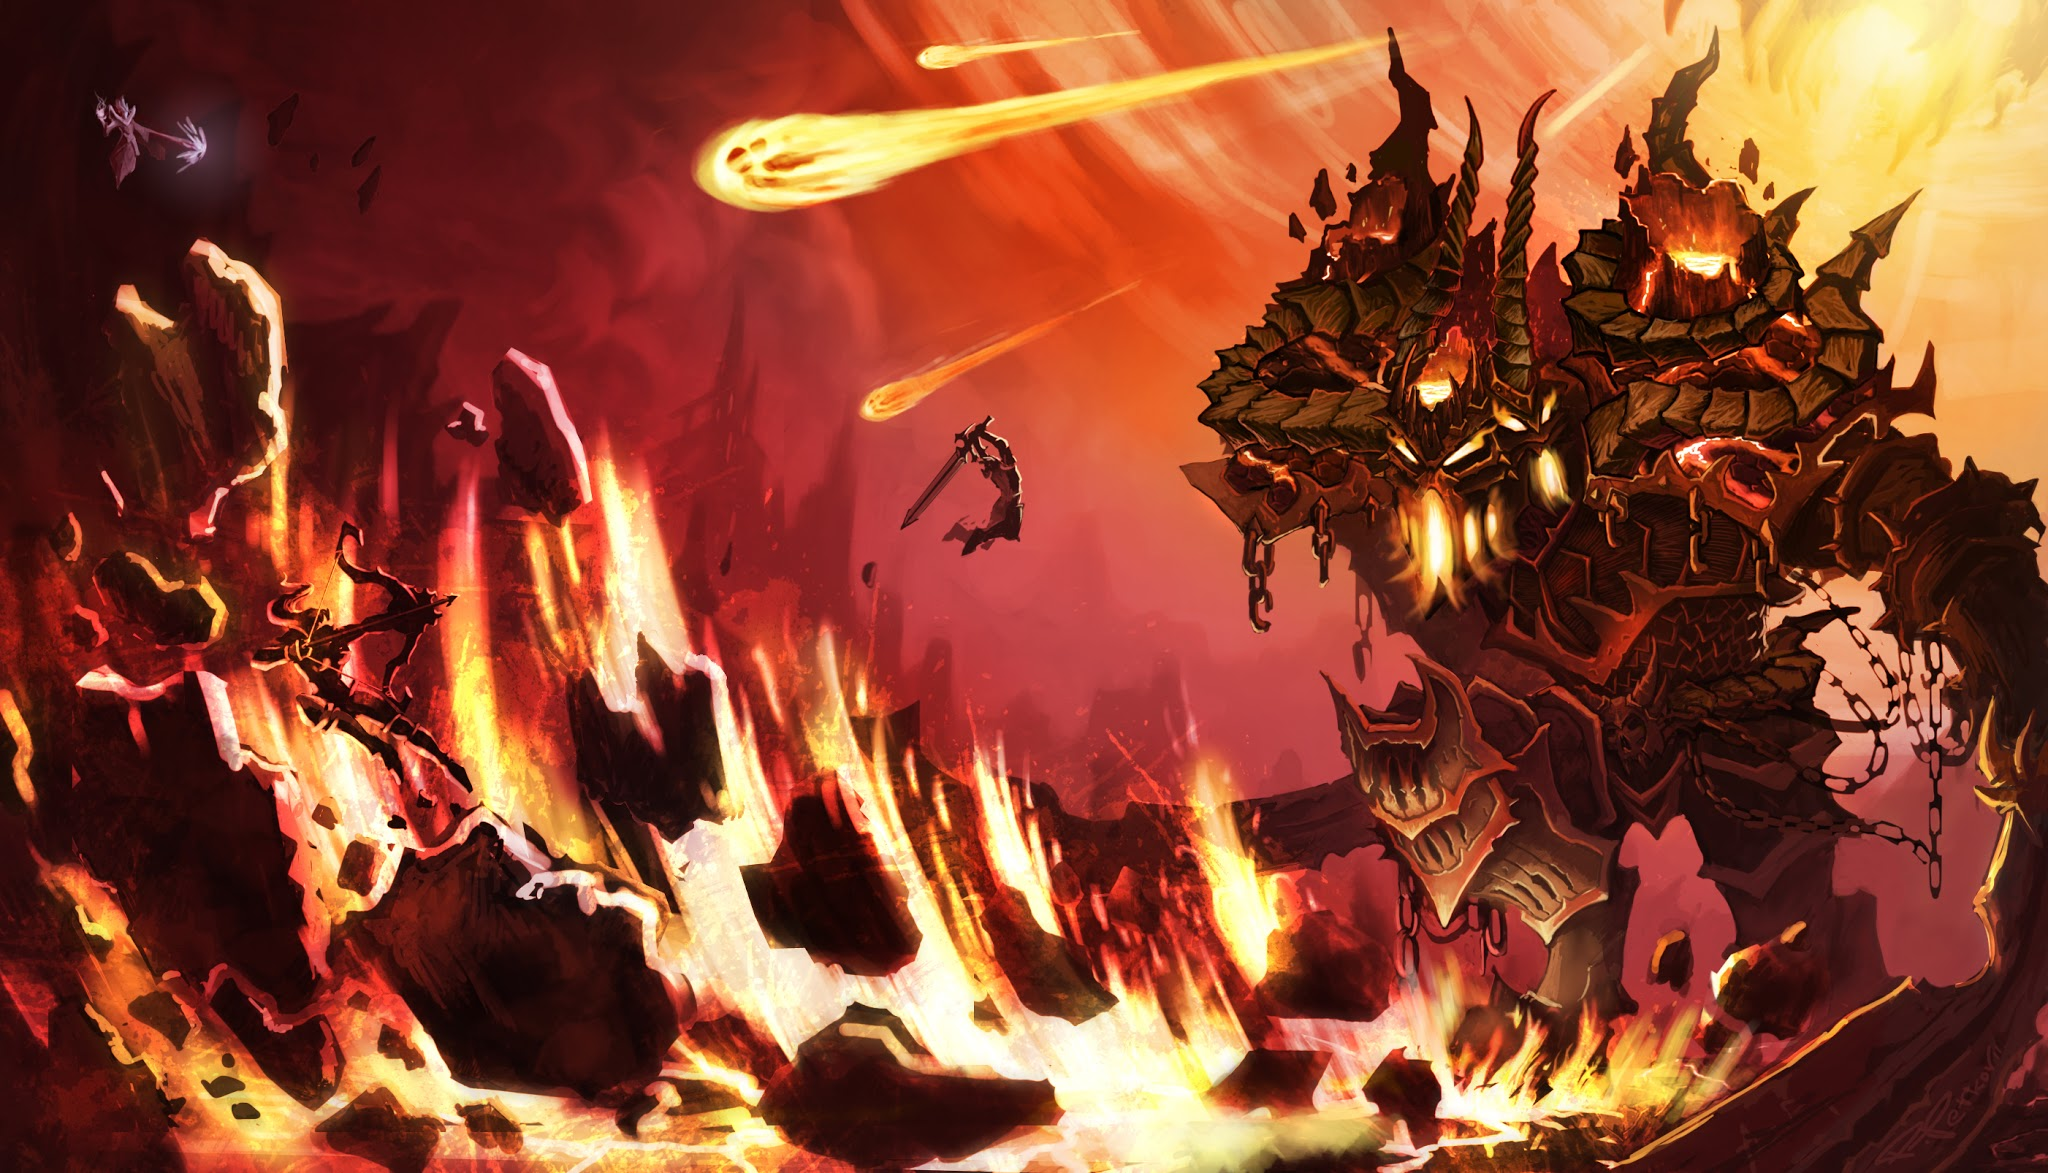 The Rock Hd Wallpapers 1080p Warriors Attacking A Lava Monster Anime